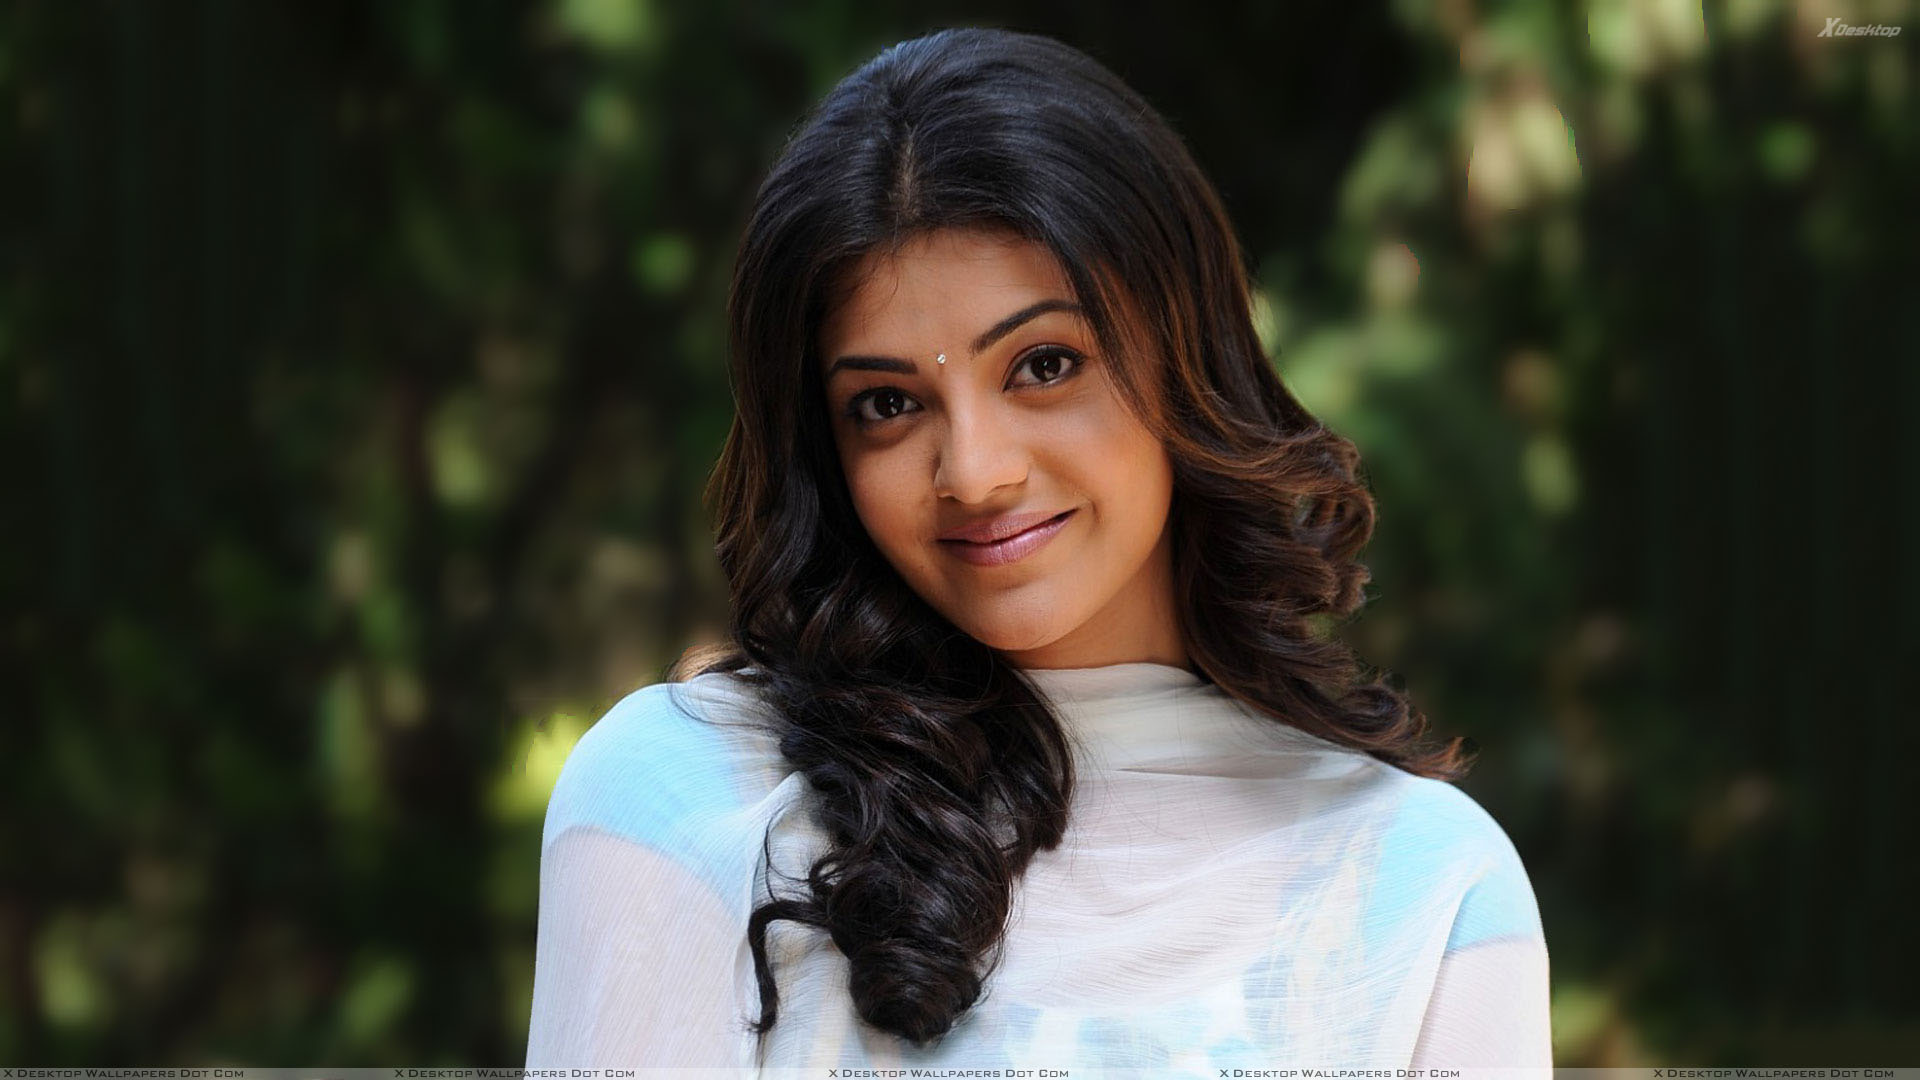 Kajal Aggarwal Wallpapers, Photos & Images in HD